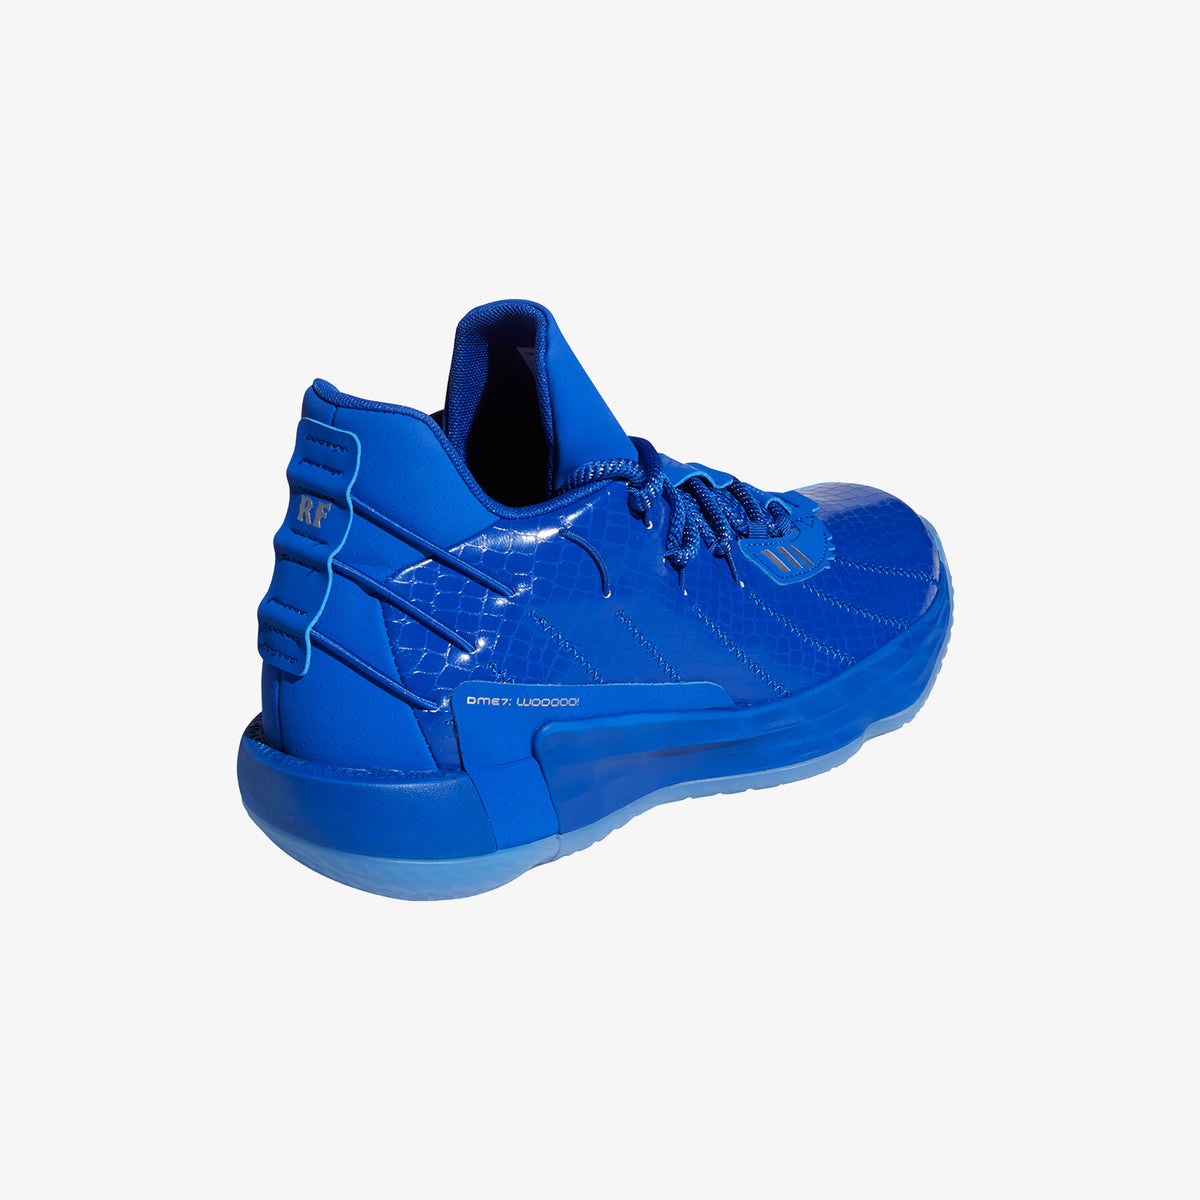 Dame 7 'Ric Flair' - Blue